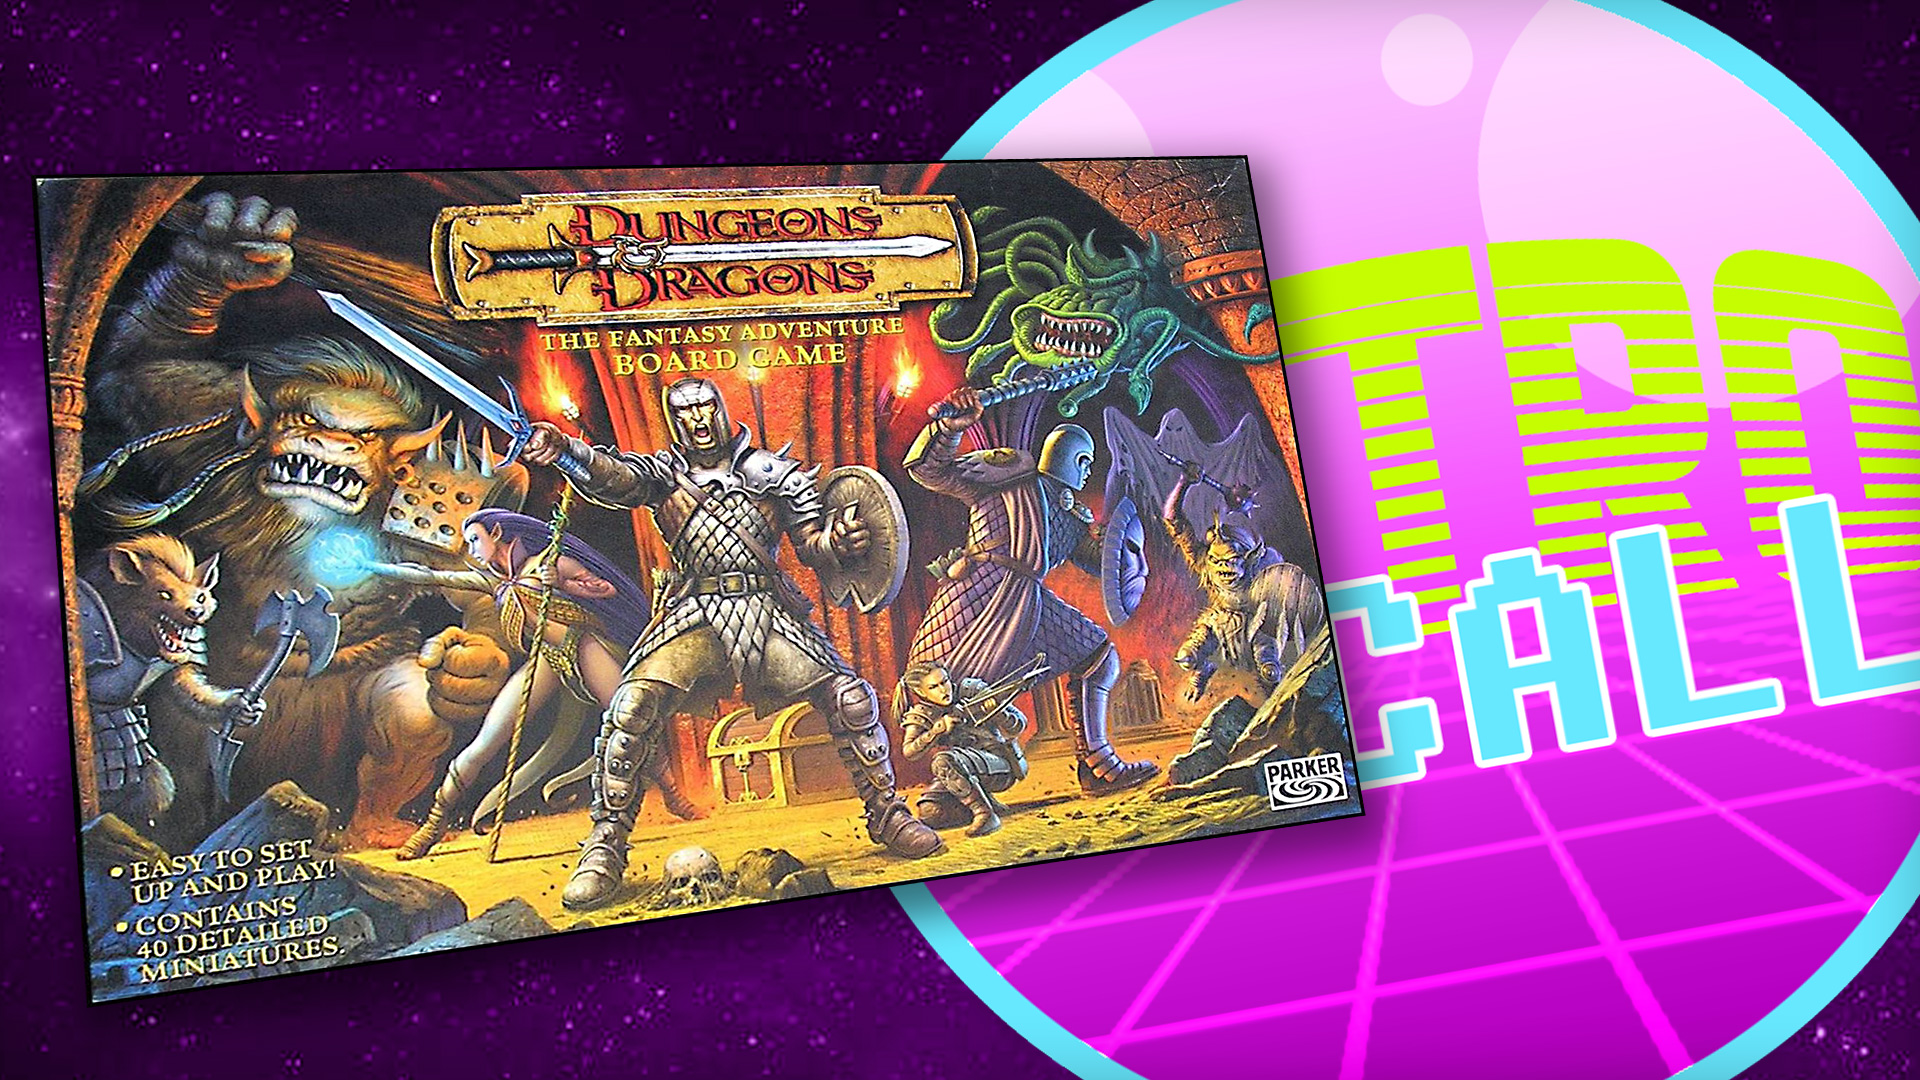 Retro Recall Dungeons Dragons The Fantasy Adventure Game Ontabletop Home Of Beasts Of War